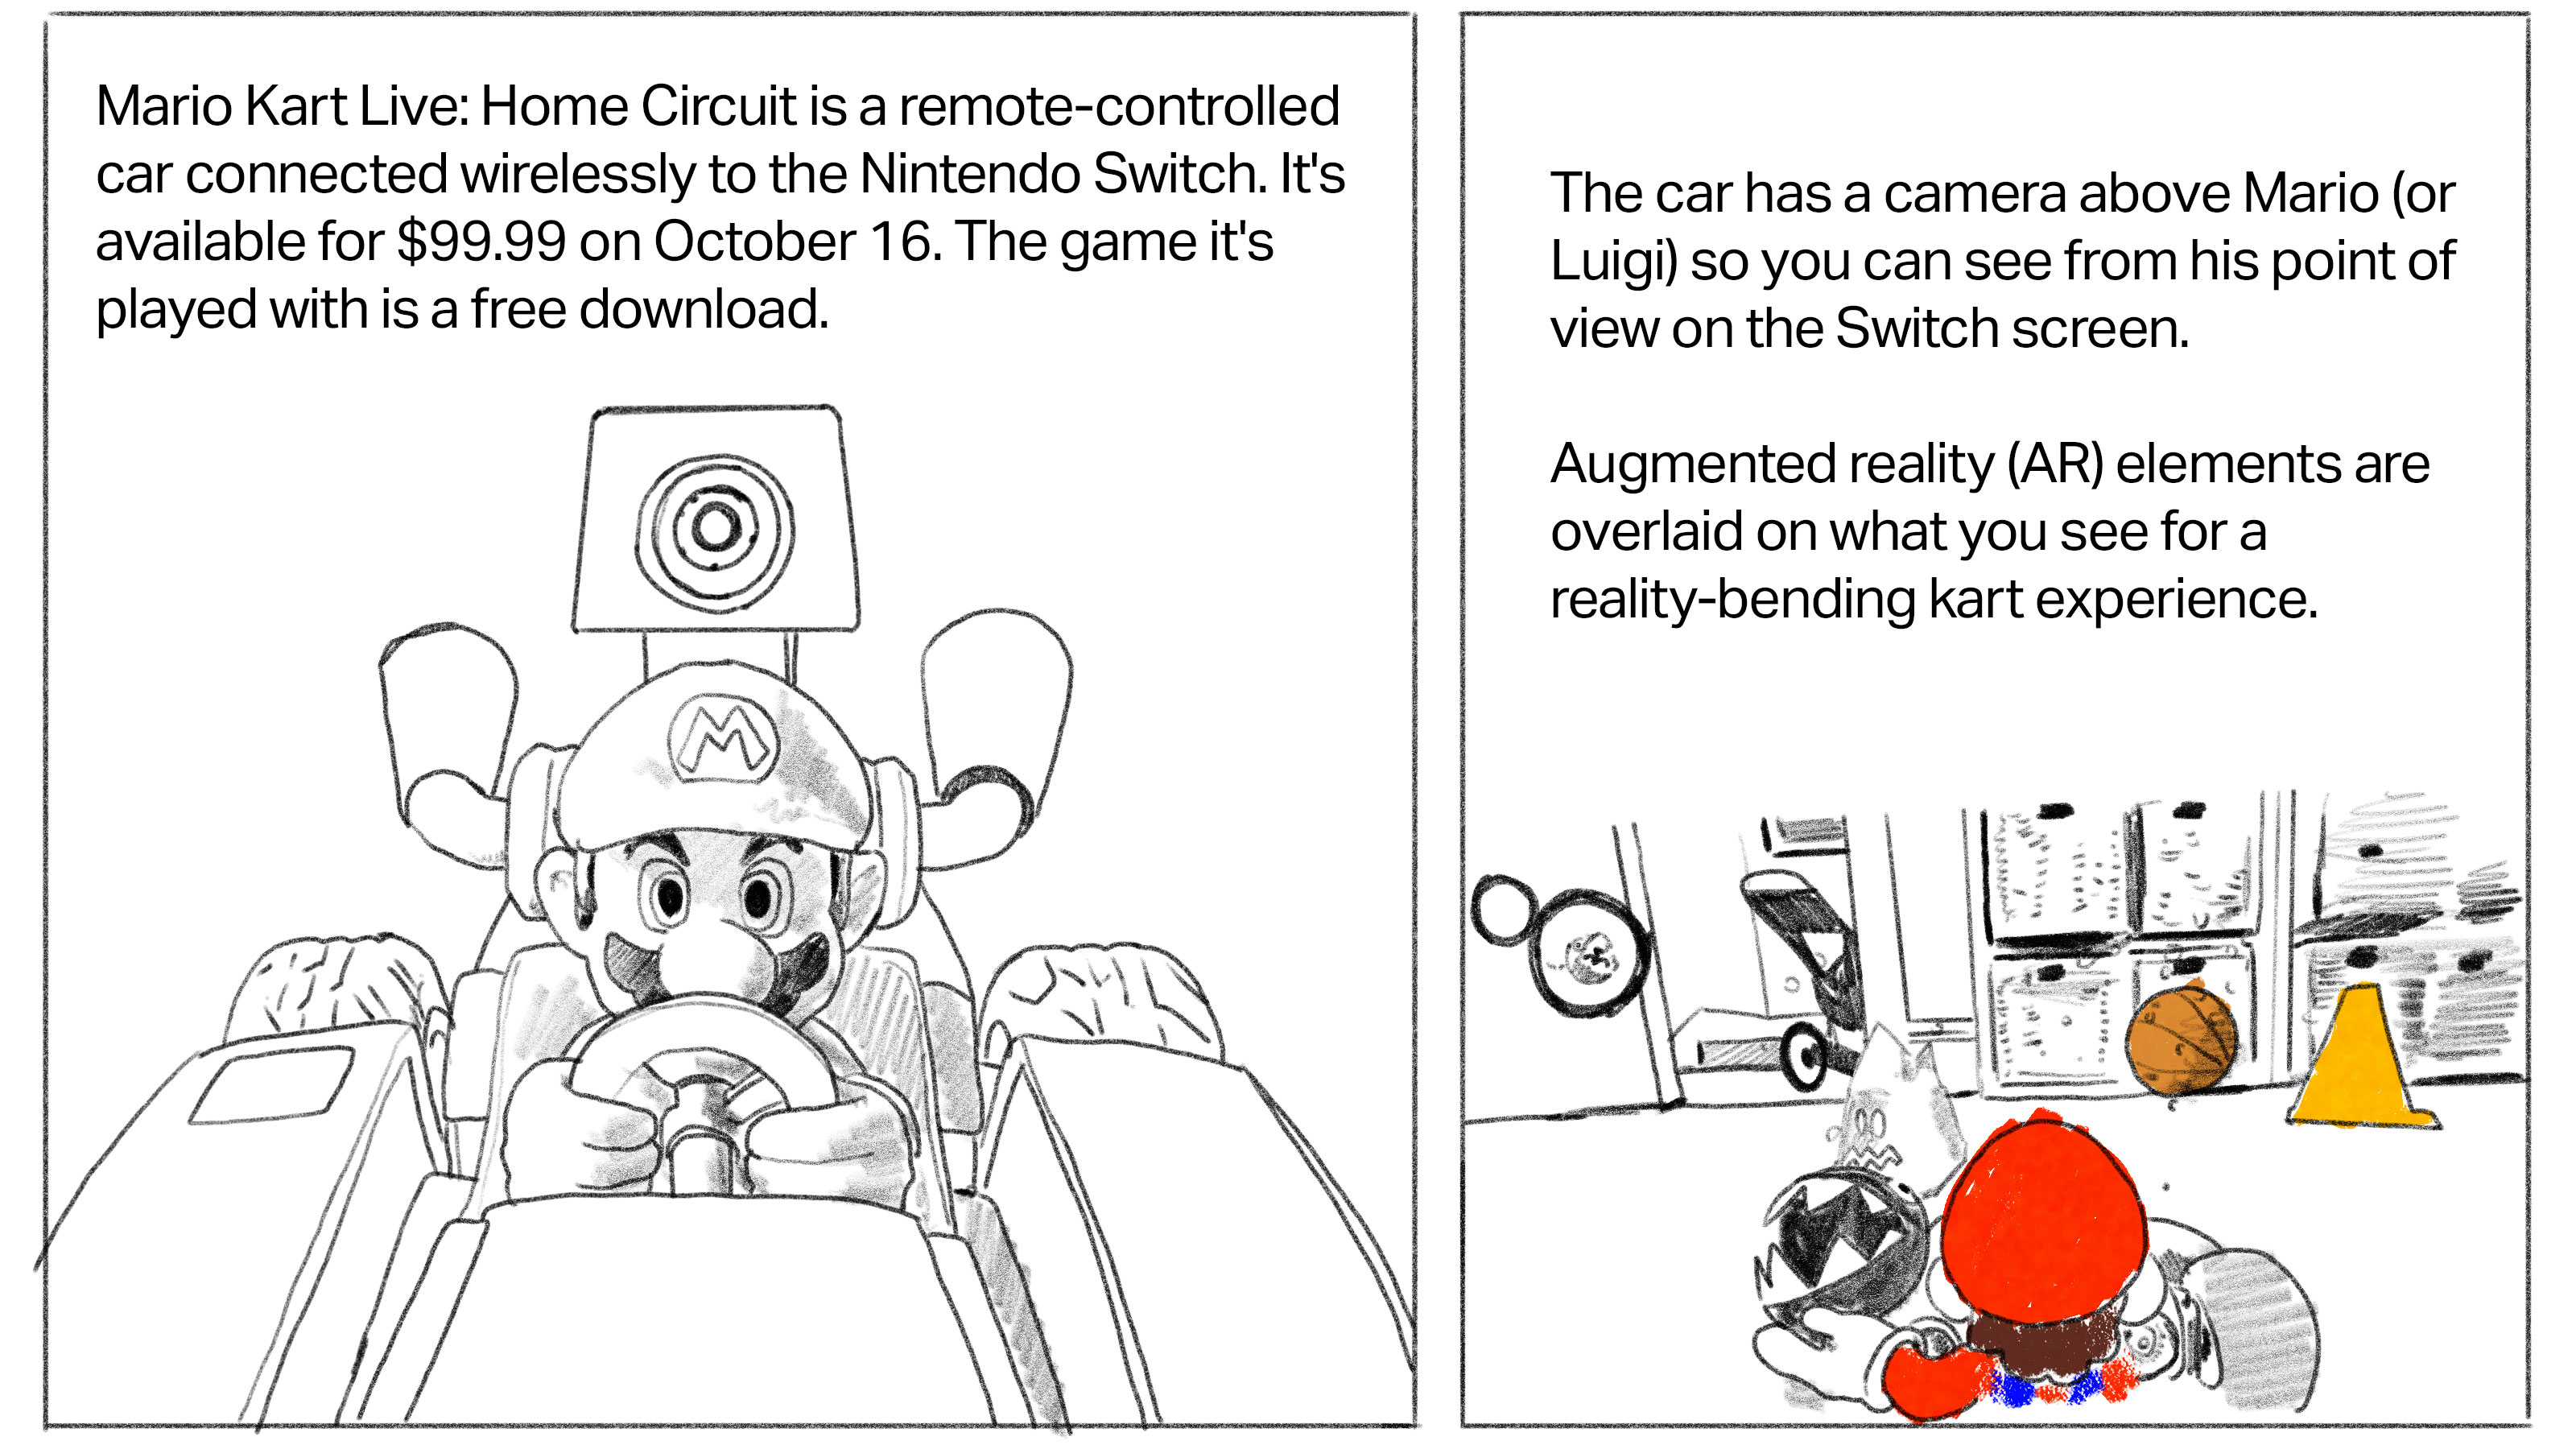 Text: Mario Kart Live: Home Circuit is a remote-controlled car connected wirelessly to the Nintendo Switch. It's available for $99.99 on October 16. The game it's played with is a free download. [Image: drawing of closeup of Mario Kart toy] Text: The car has a camera above Mario (or Luigi) so you can see from his point of view on the Switch screen. Augmented reality (AR) elements are overlaid on what you see for a reality-bending cart experience. [Image: drawing of in-game play in a living room]